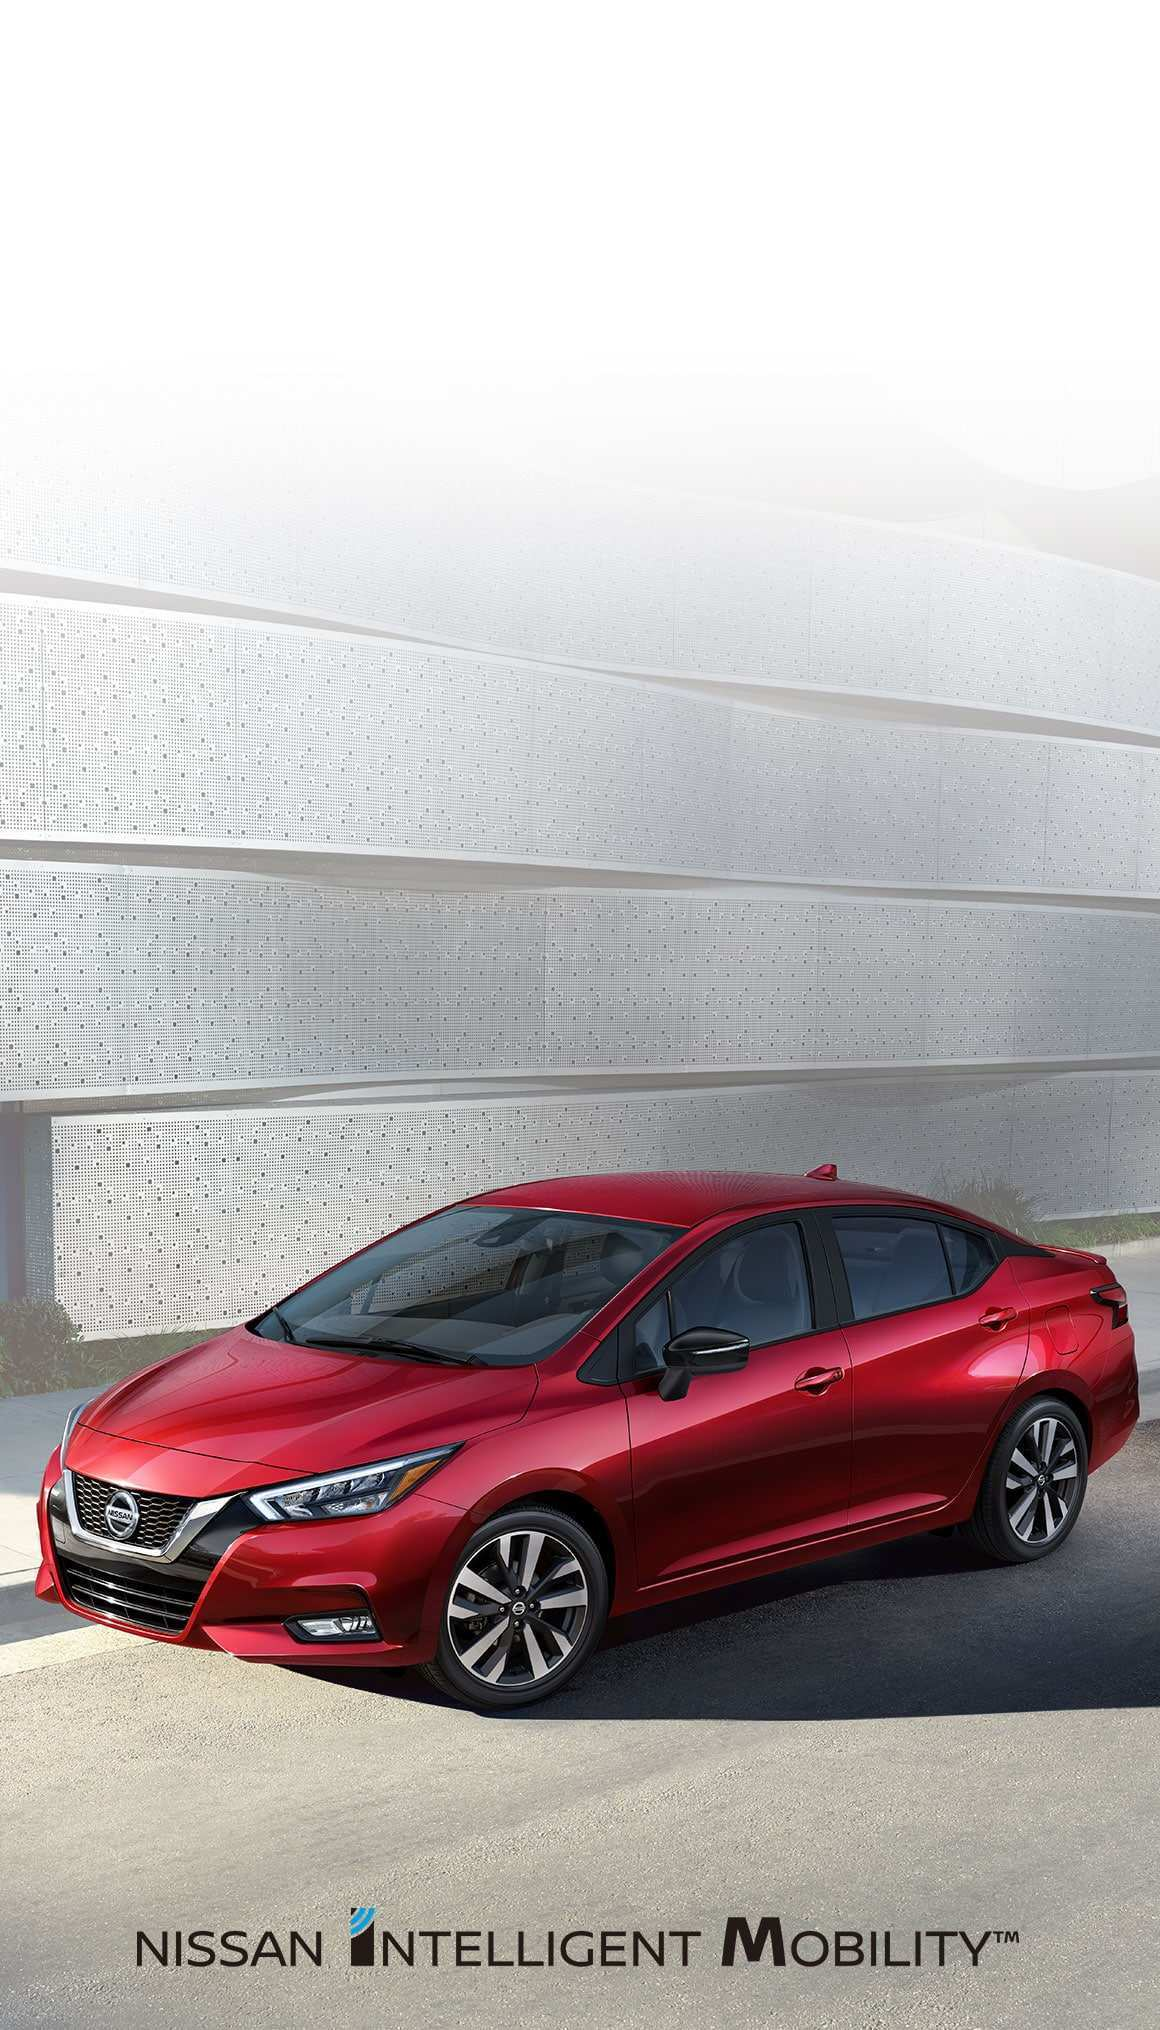 31 All New Nissan Versa 2020 Picture